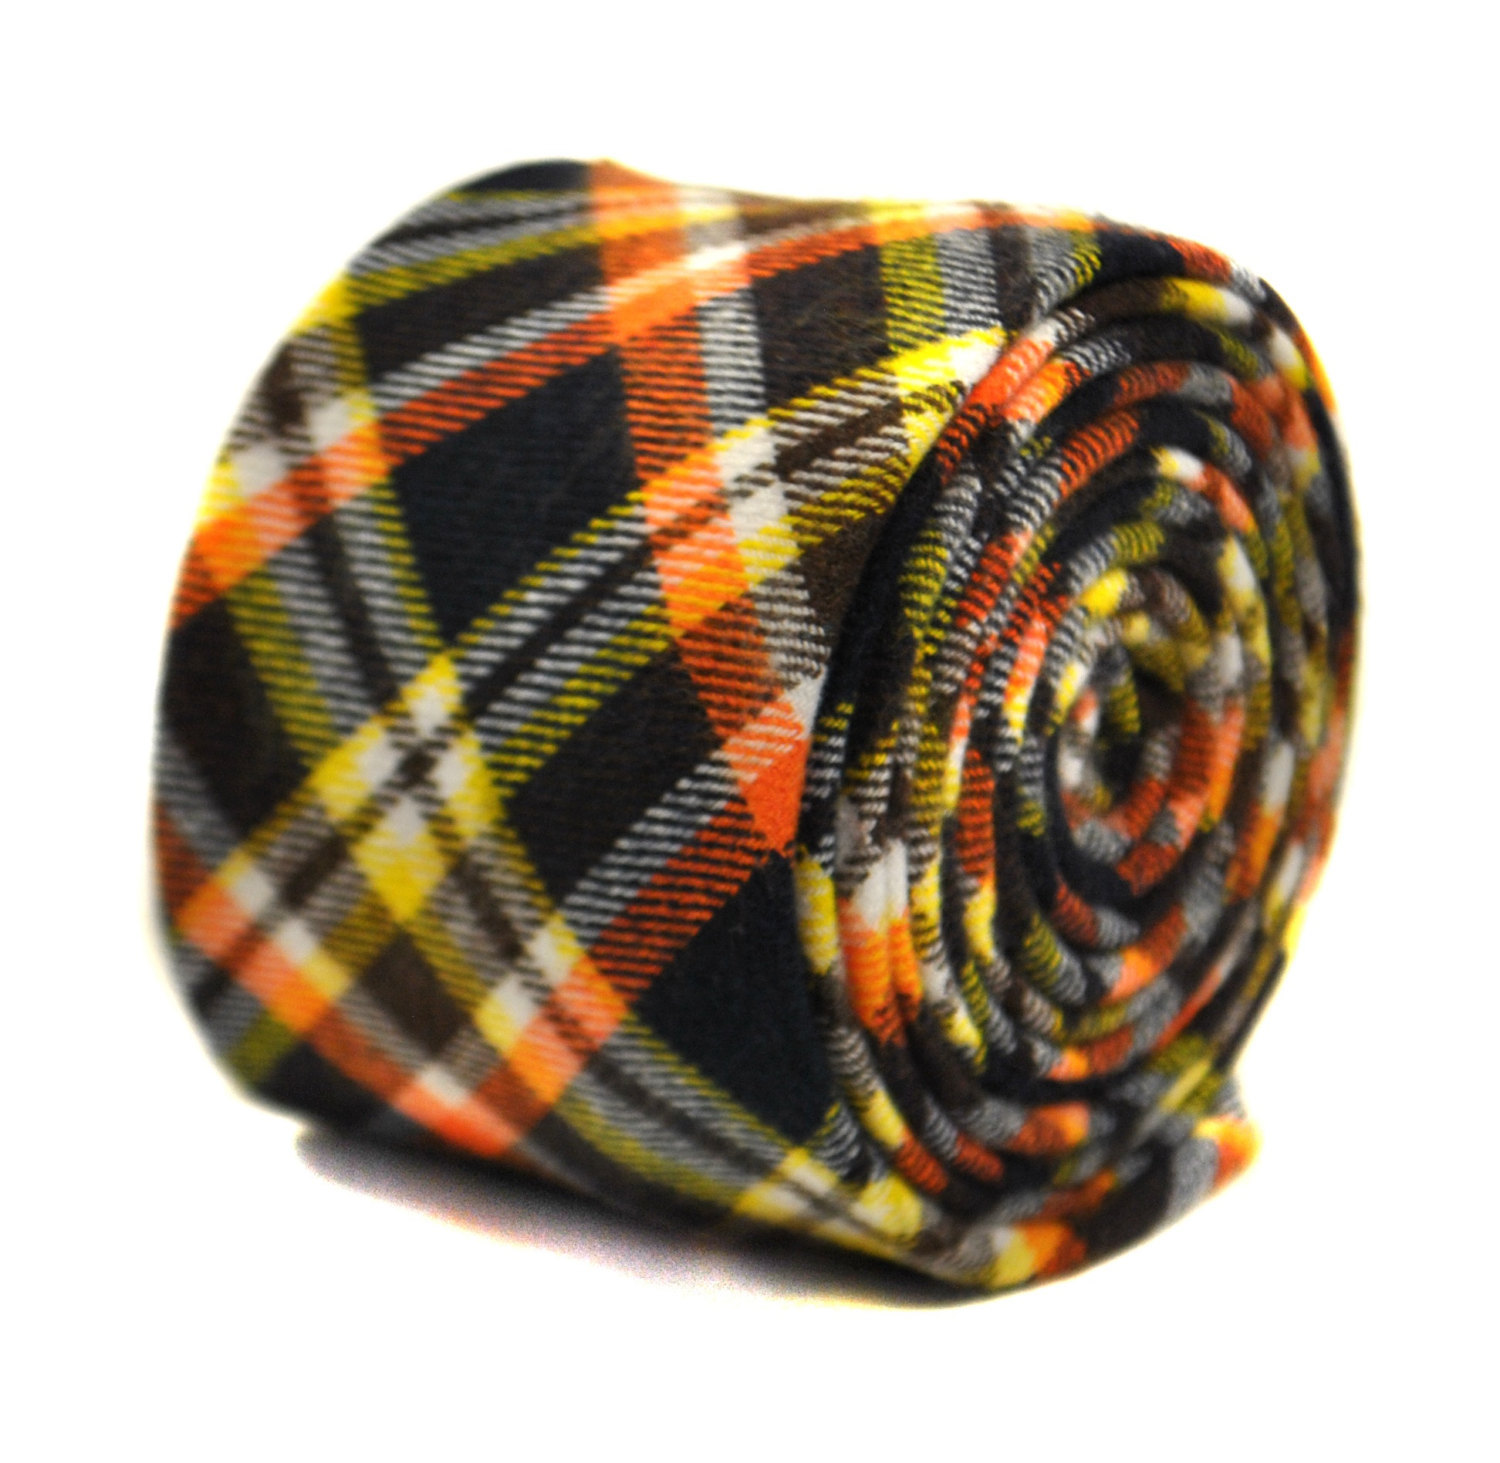 dark navy blue, yellow and orange checked 100% cotton tie by Frederick Thomas FT